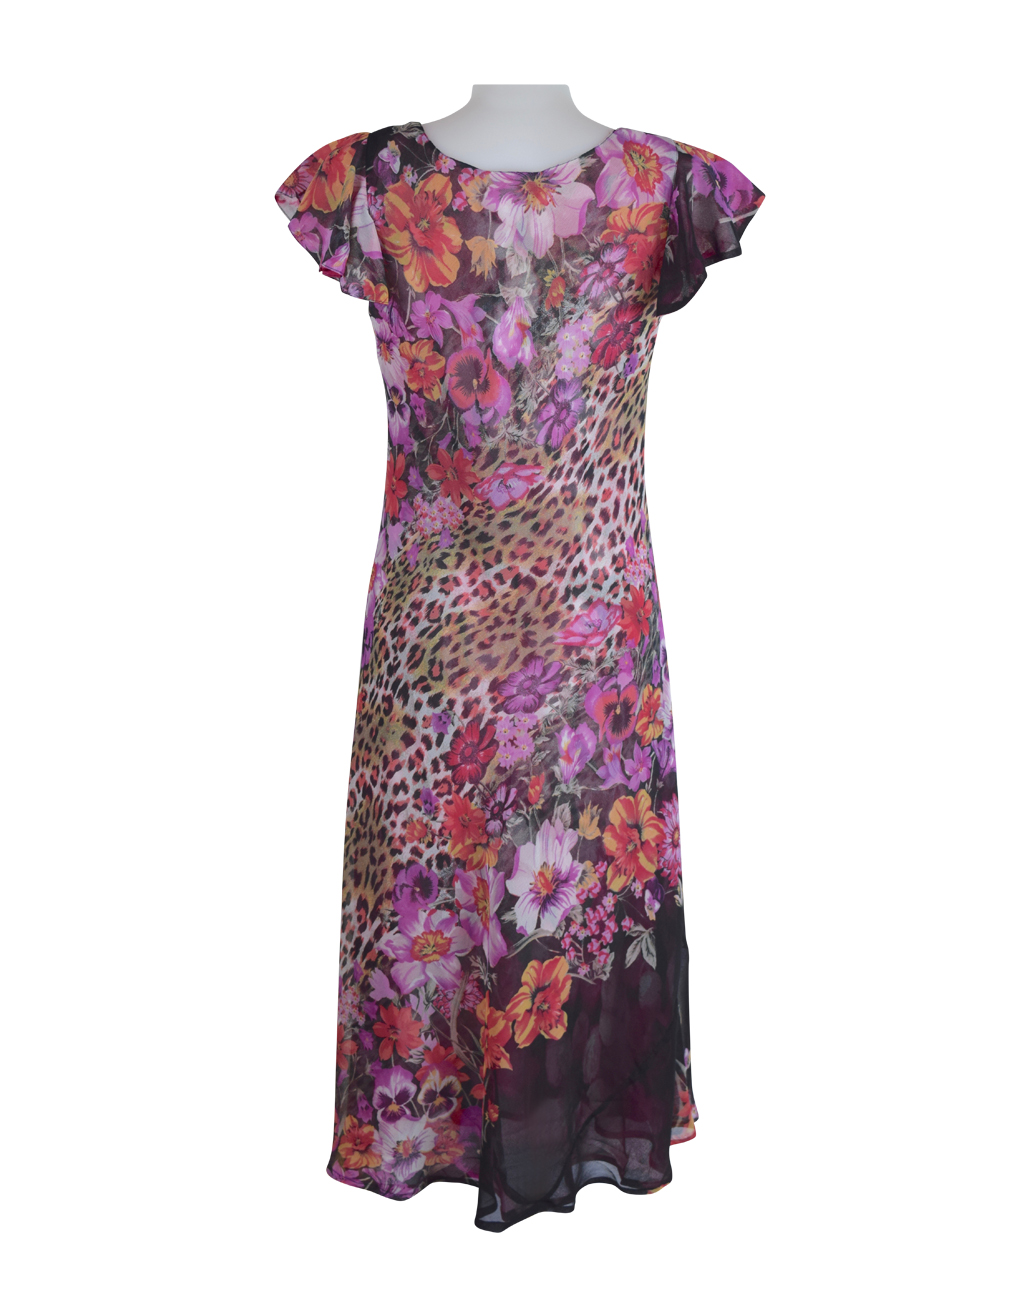 Paramour Reversible 2 In 1 Capped Sleeve Dress Pink Abstract / Leopard Floral D